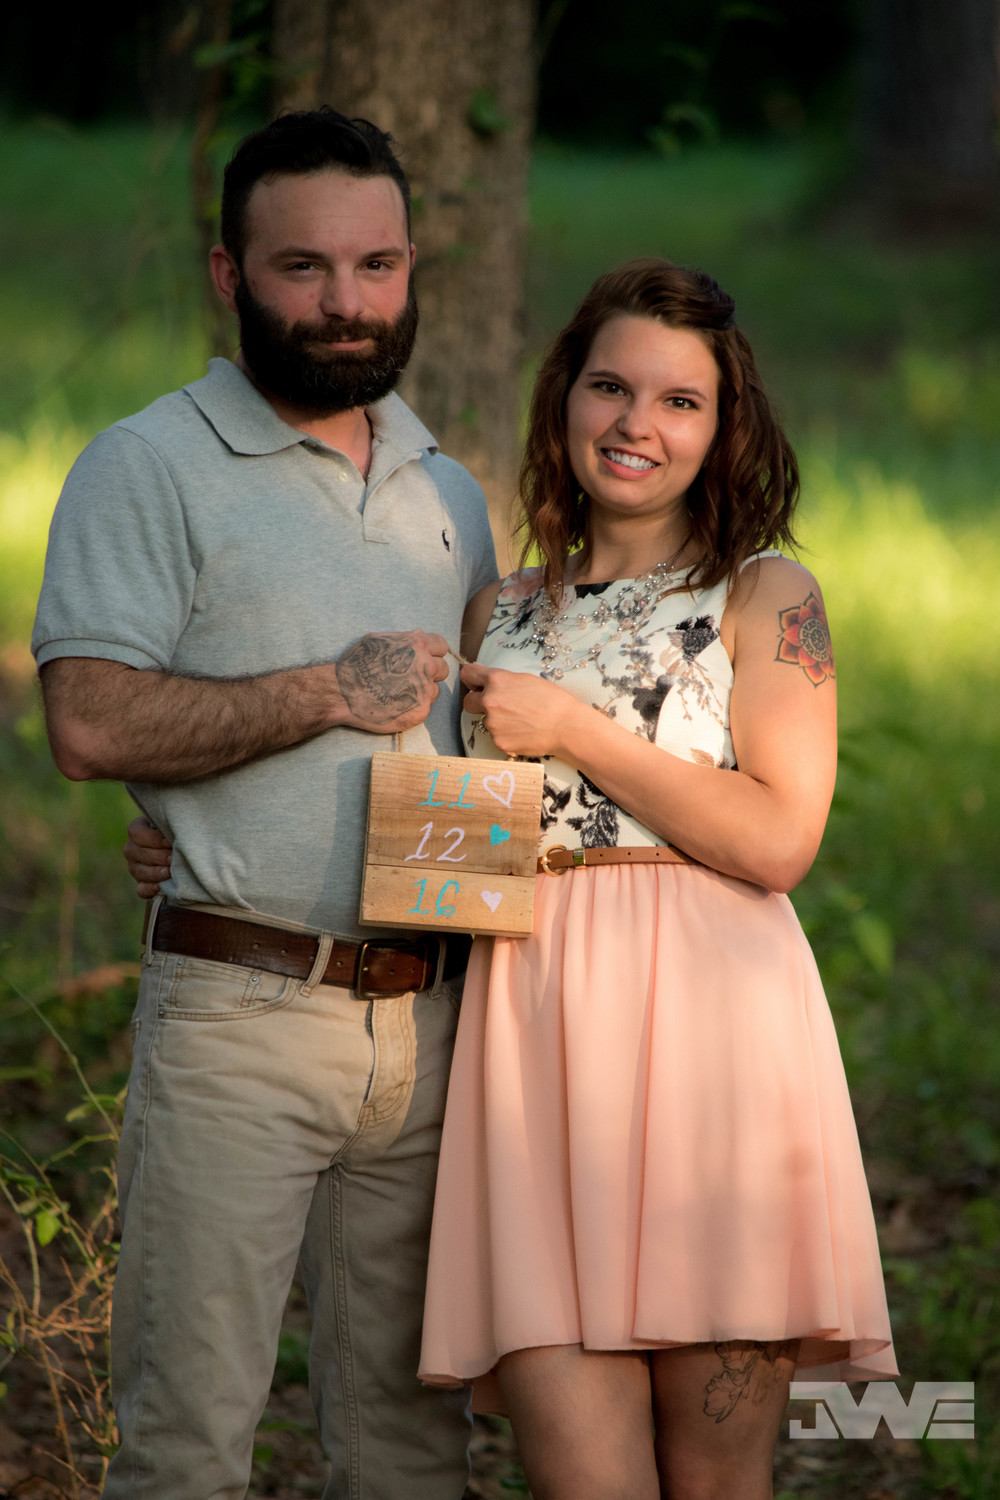 Scott Chelsey Engagement Shoot-4.jpg